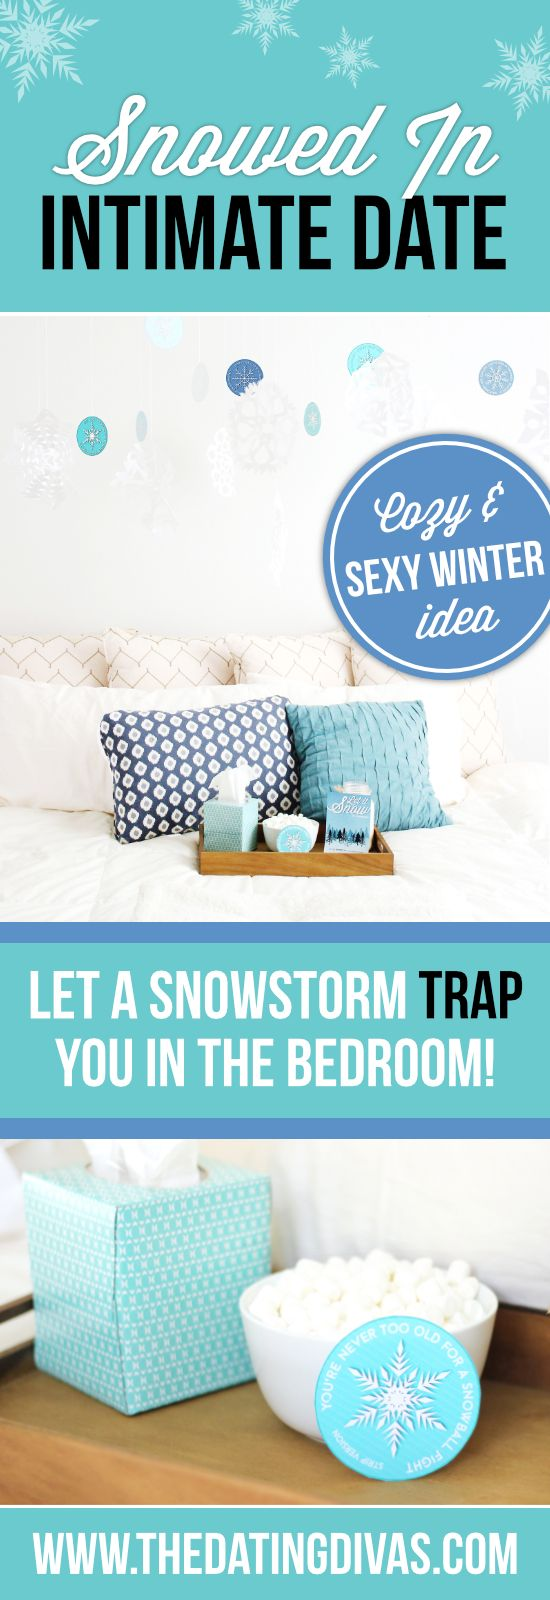 Sexy Winter Date Idea! Love it!